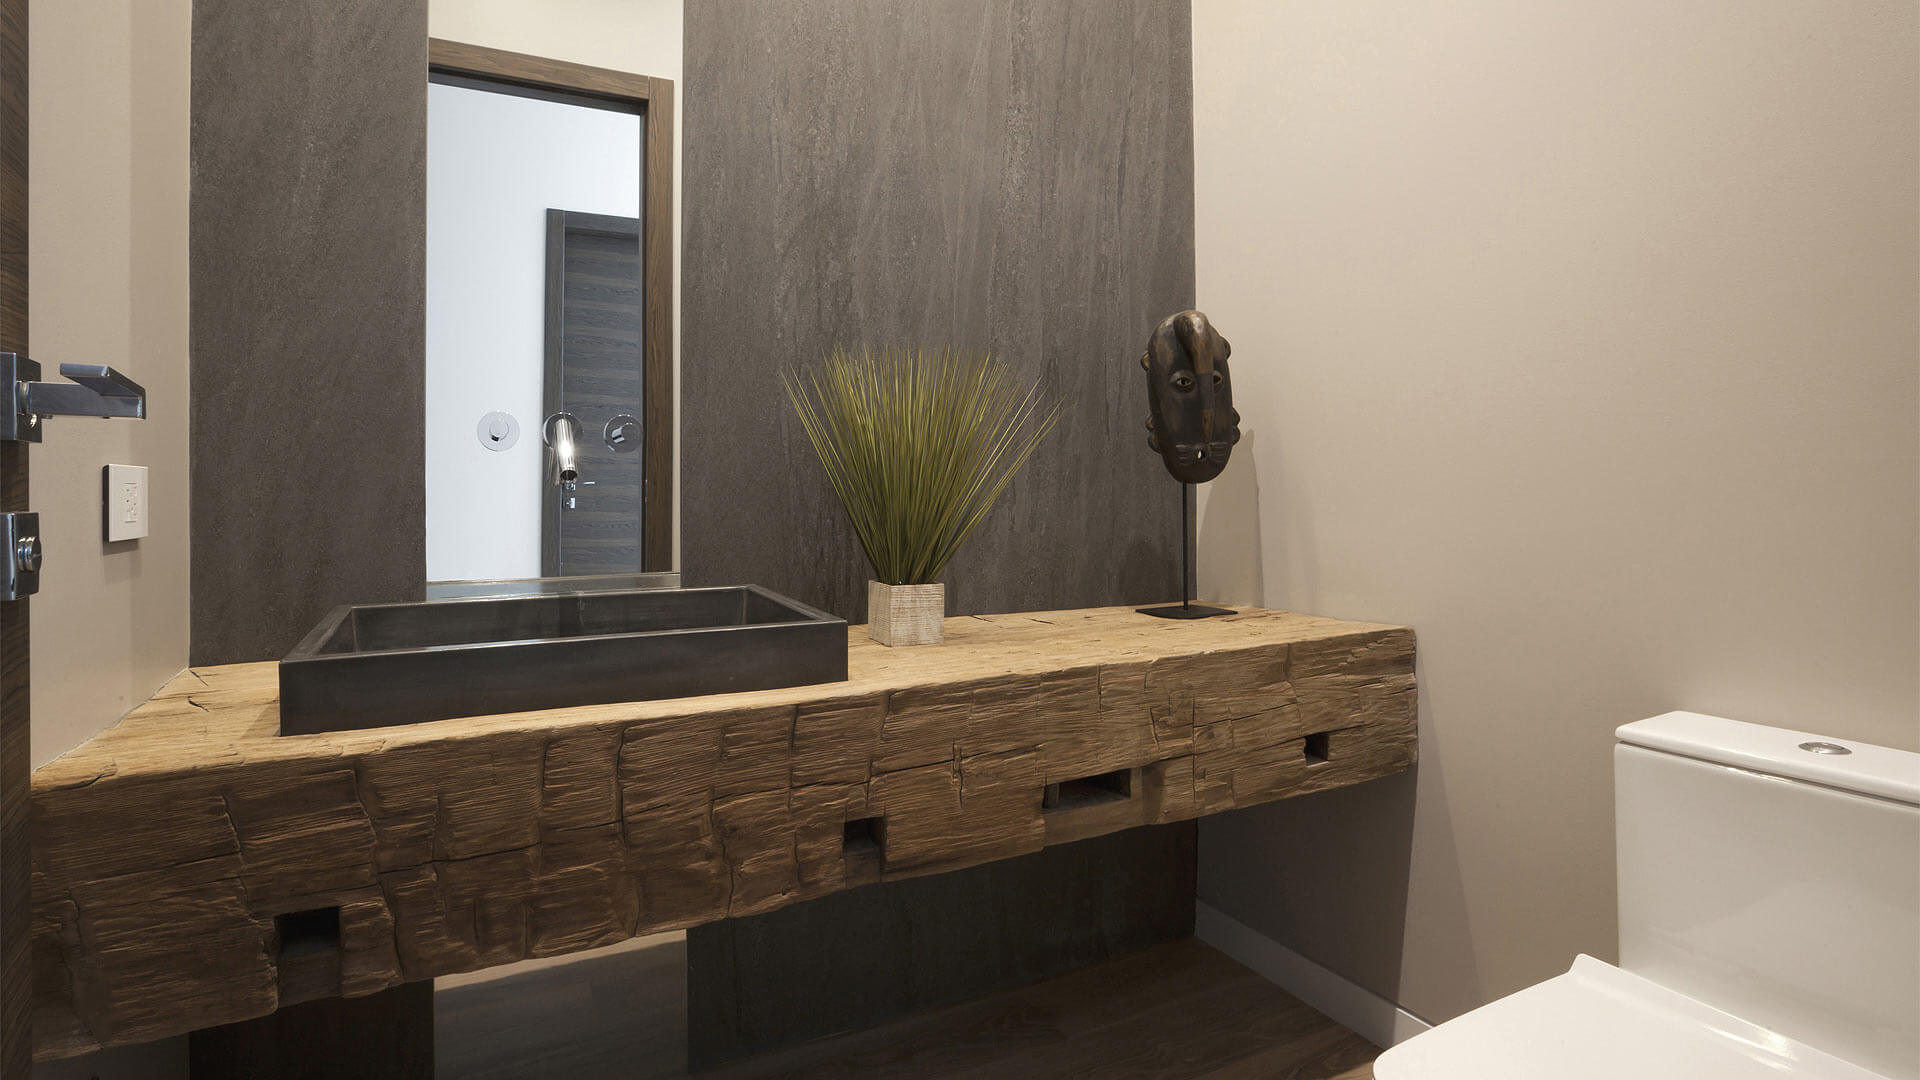 Powder room features rough heavy timber wood vanity and porcelain sheet headwall with full-height mirror - Fleetwood Windows - Minimalist Modern - Indian Head Park - Chicago, Illinois - HAUS | Architecture For Modern Lifestyles, Christopher Short, Indianapolis Architect with Joe Trojanowski